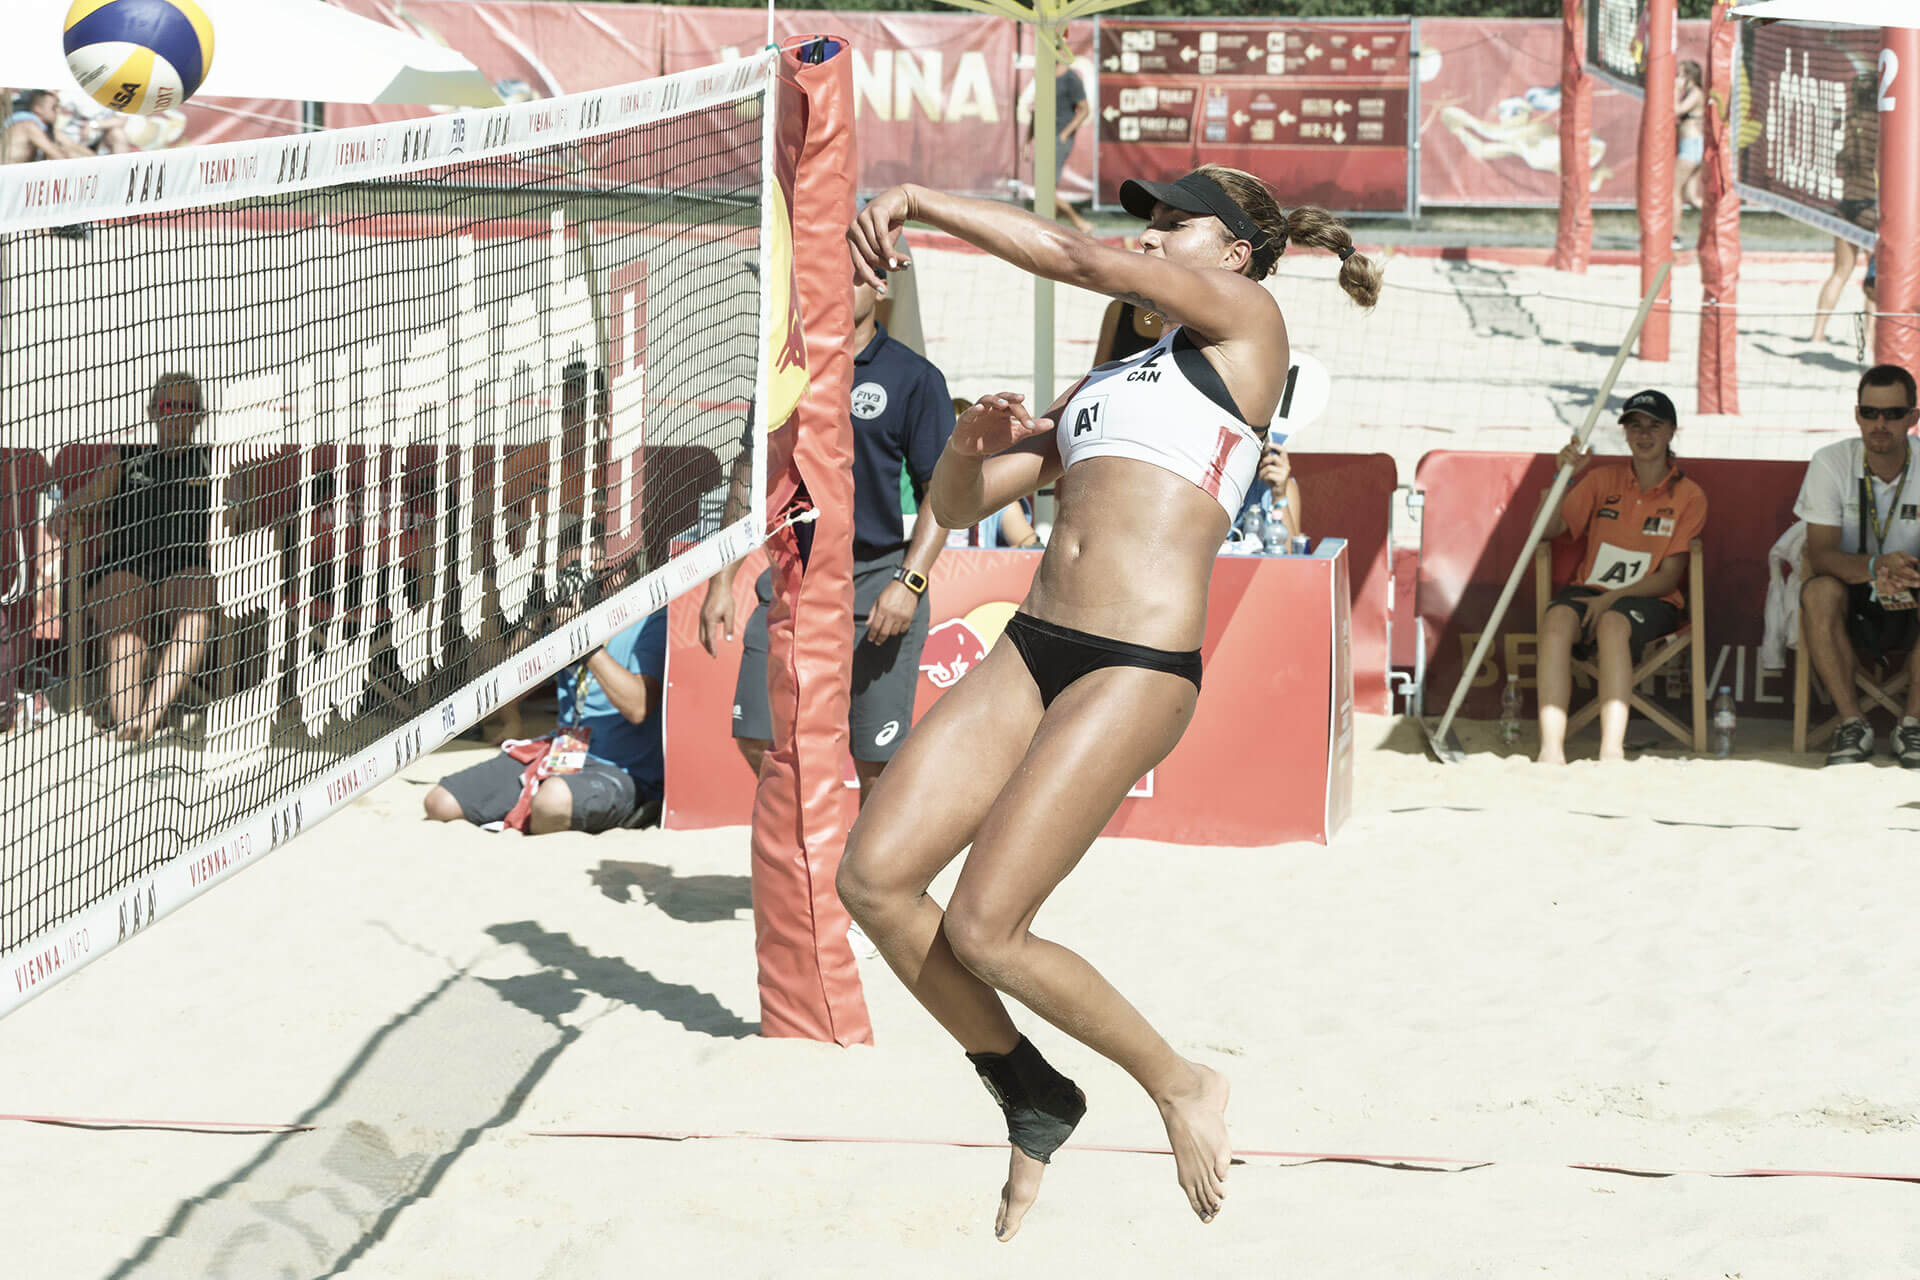 Beachvolleyball WM Bansley/Wilkerson